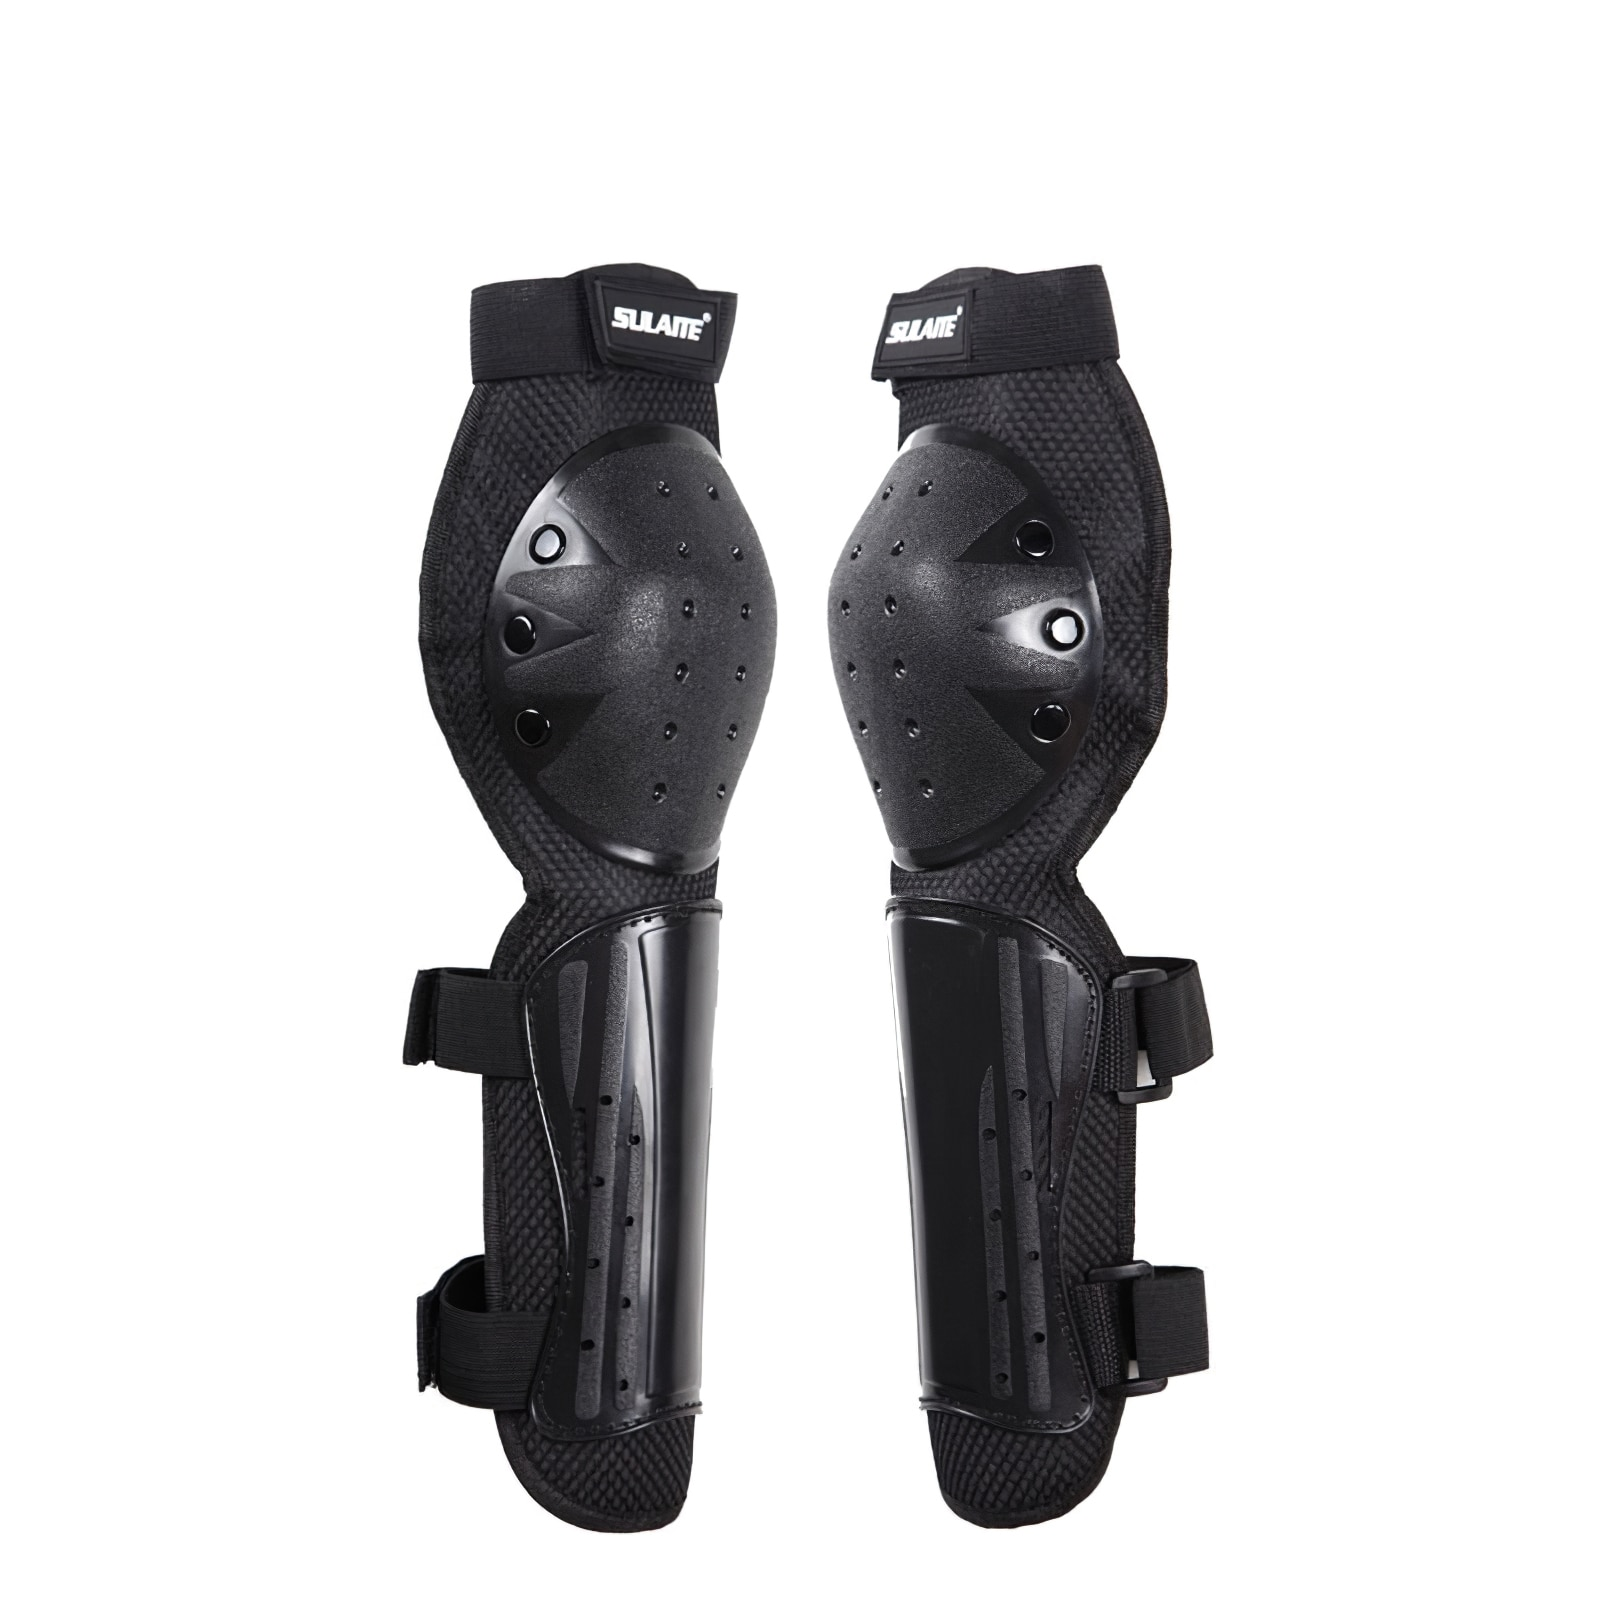 Motorcycle Cross Knee Pads Cross Country MX Motocross Bracket 1 Pair Of Elbow Pads And 1 Pair Of Knee Pads Combination